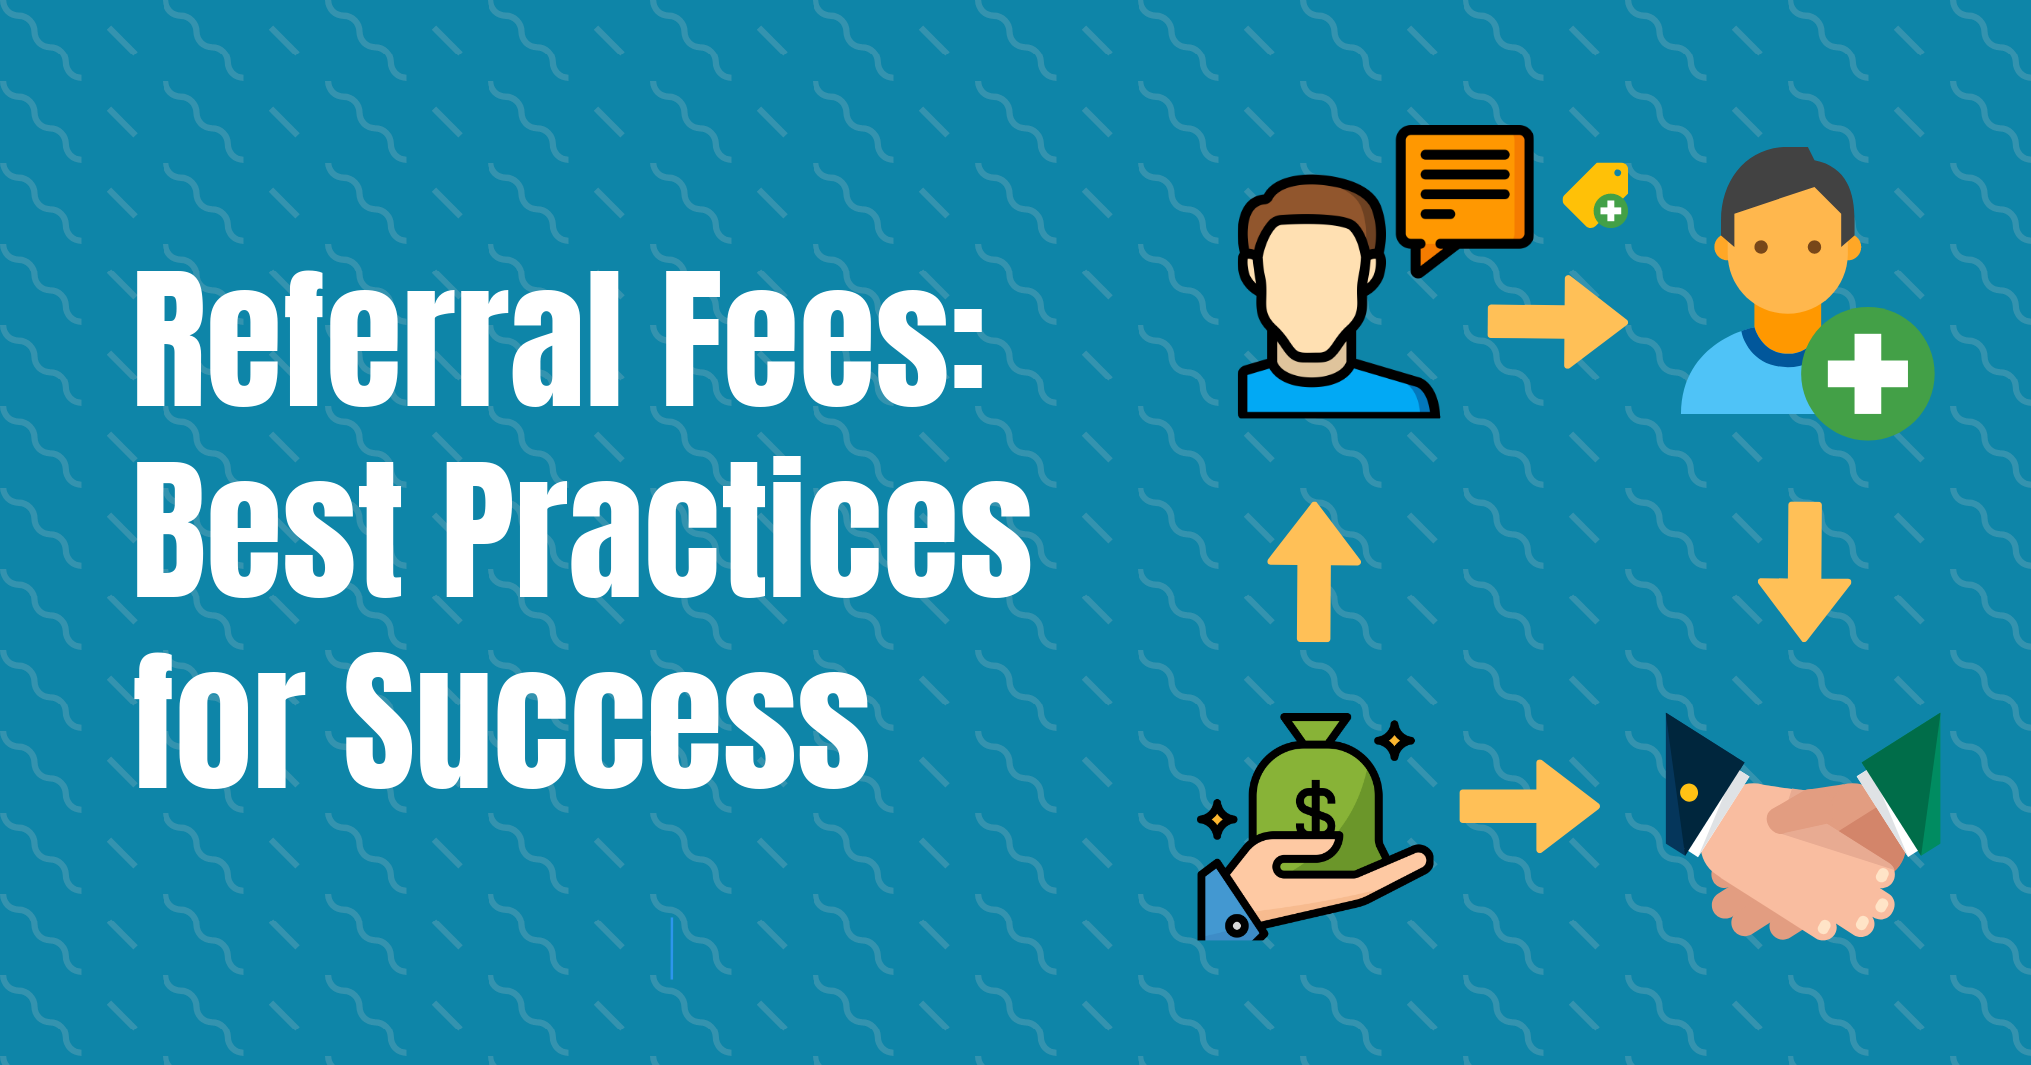 Referral Fees: Best Practices for Success